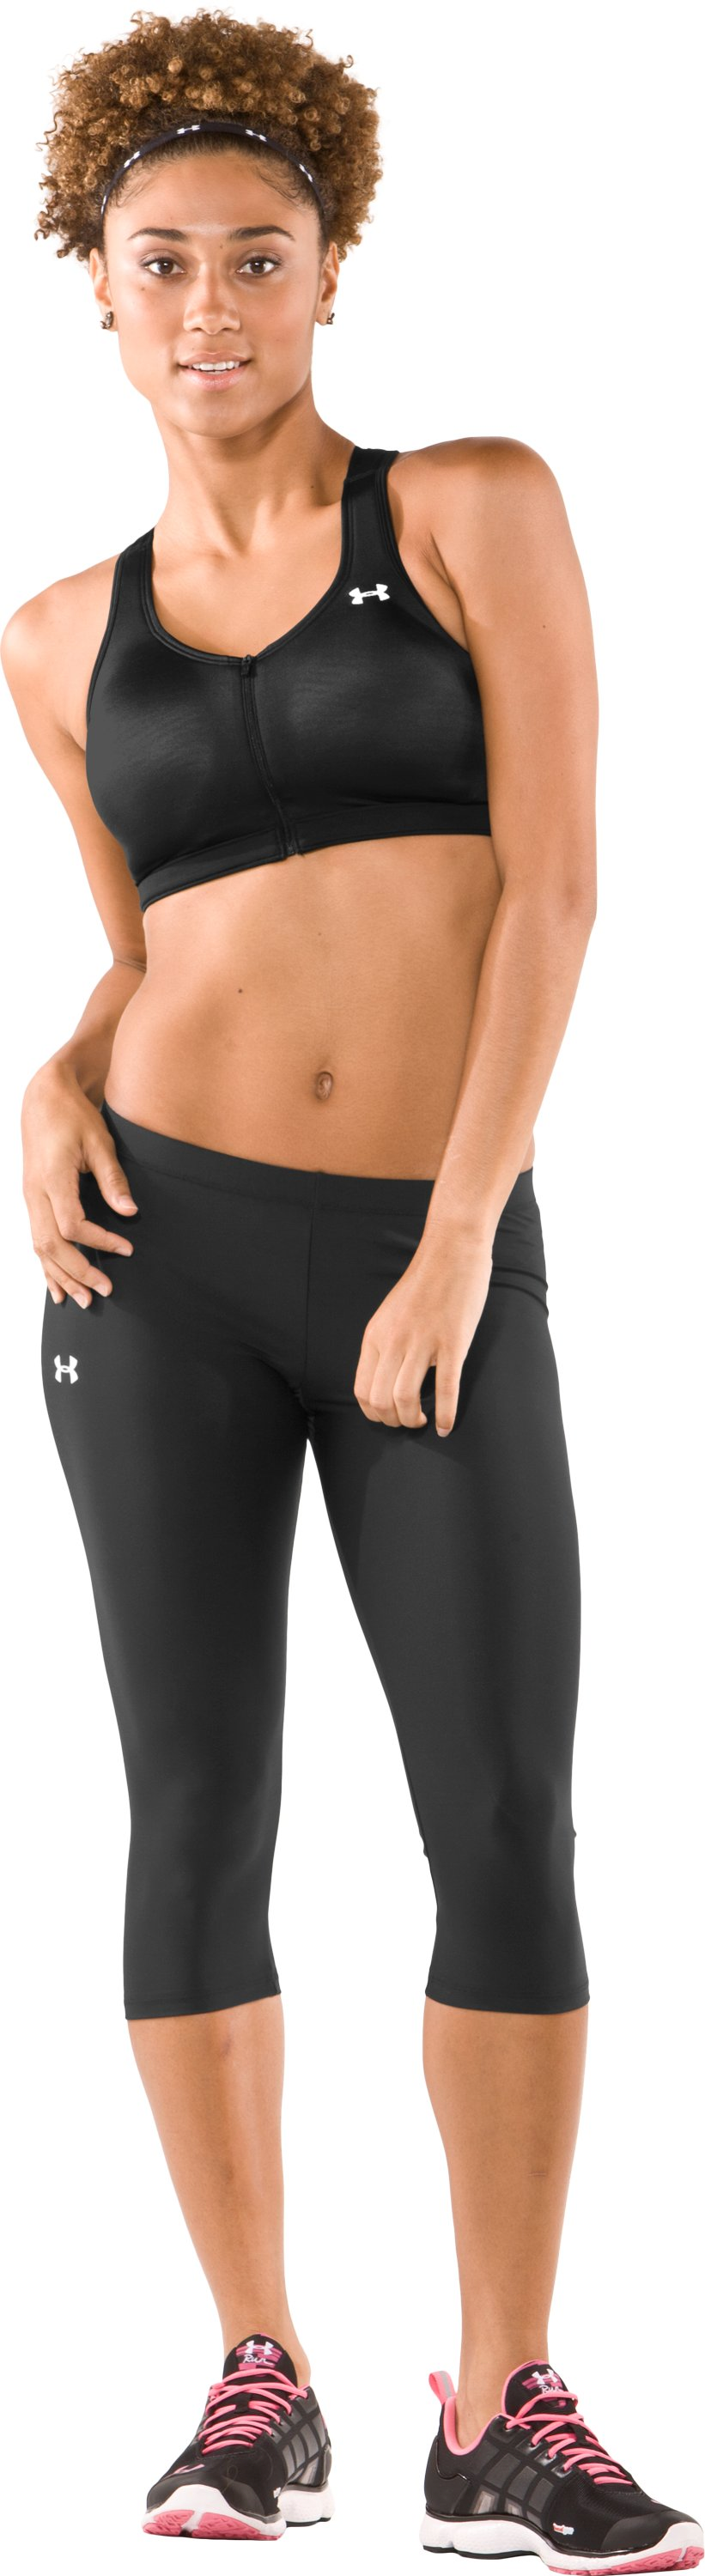 Women's Endure High-Impact Sports Bra (D Cup) | Under Armour US